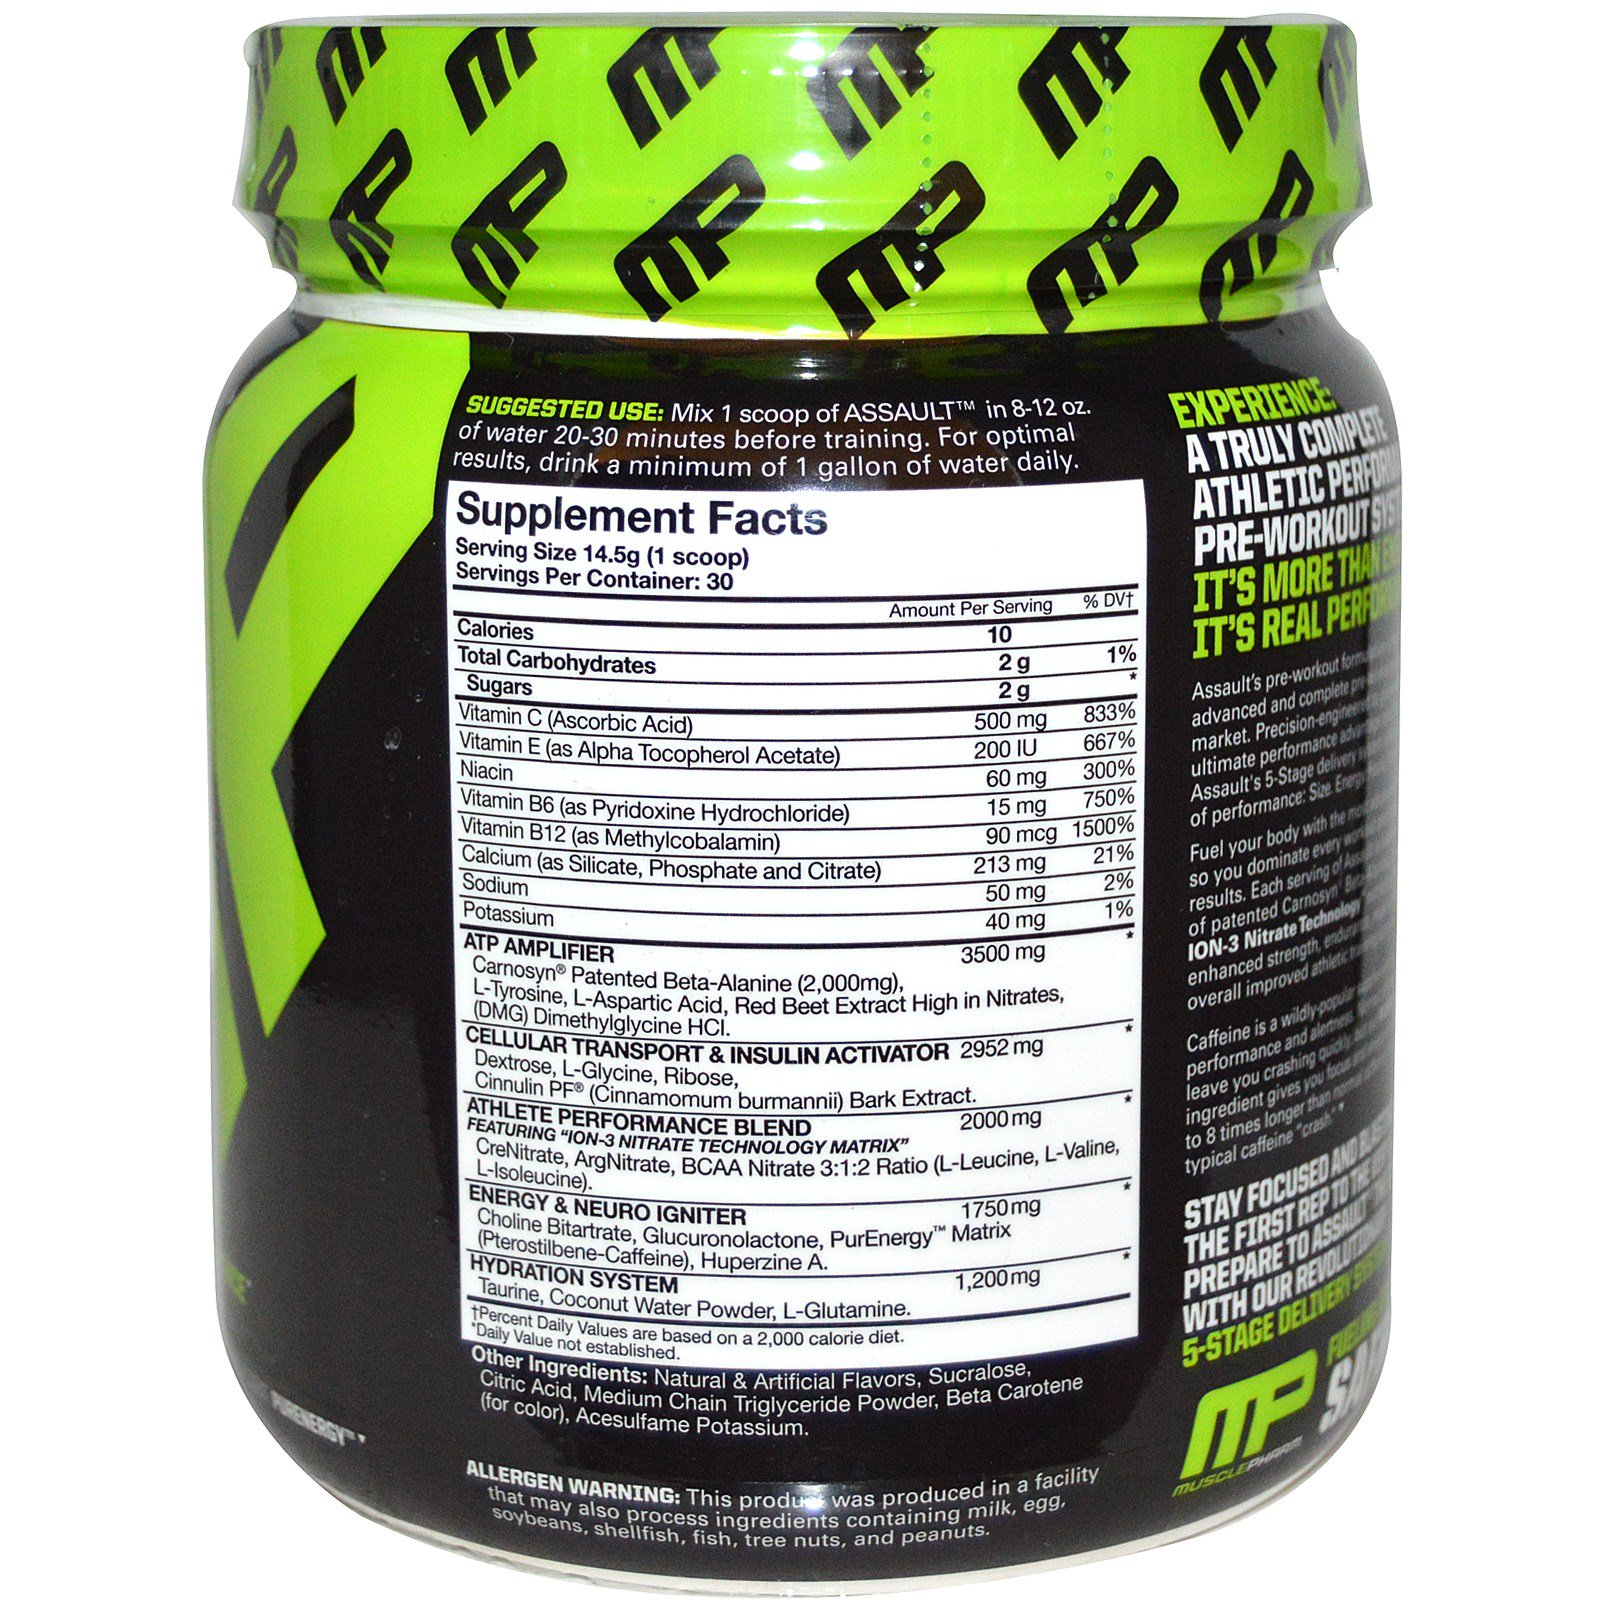 Assault the athletes pre workout system